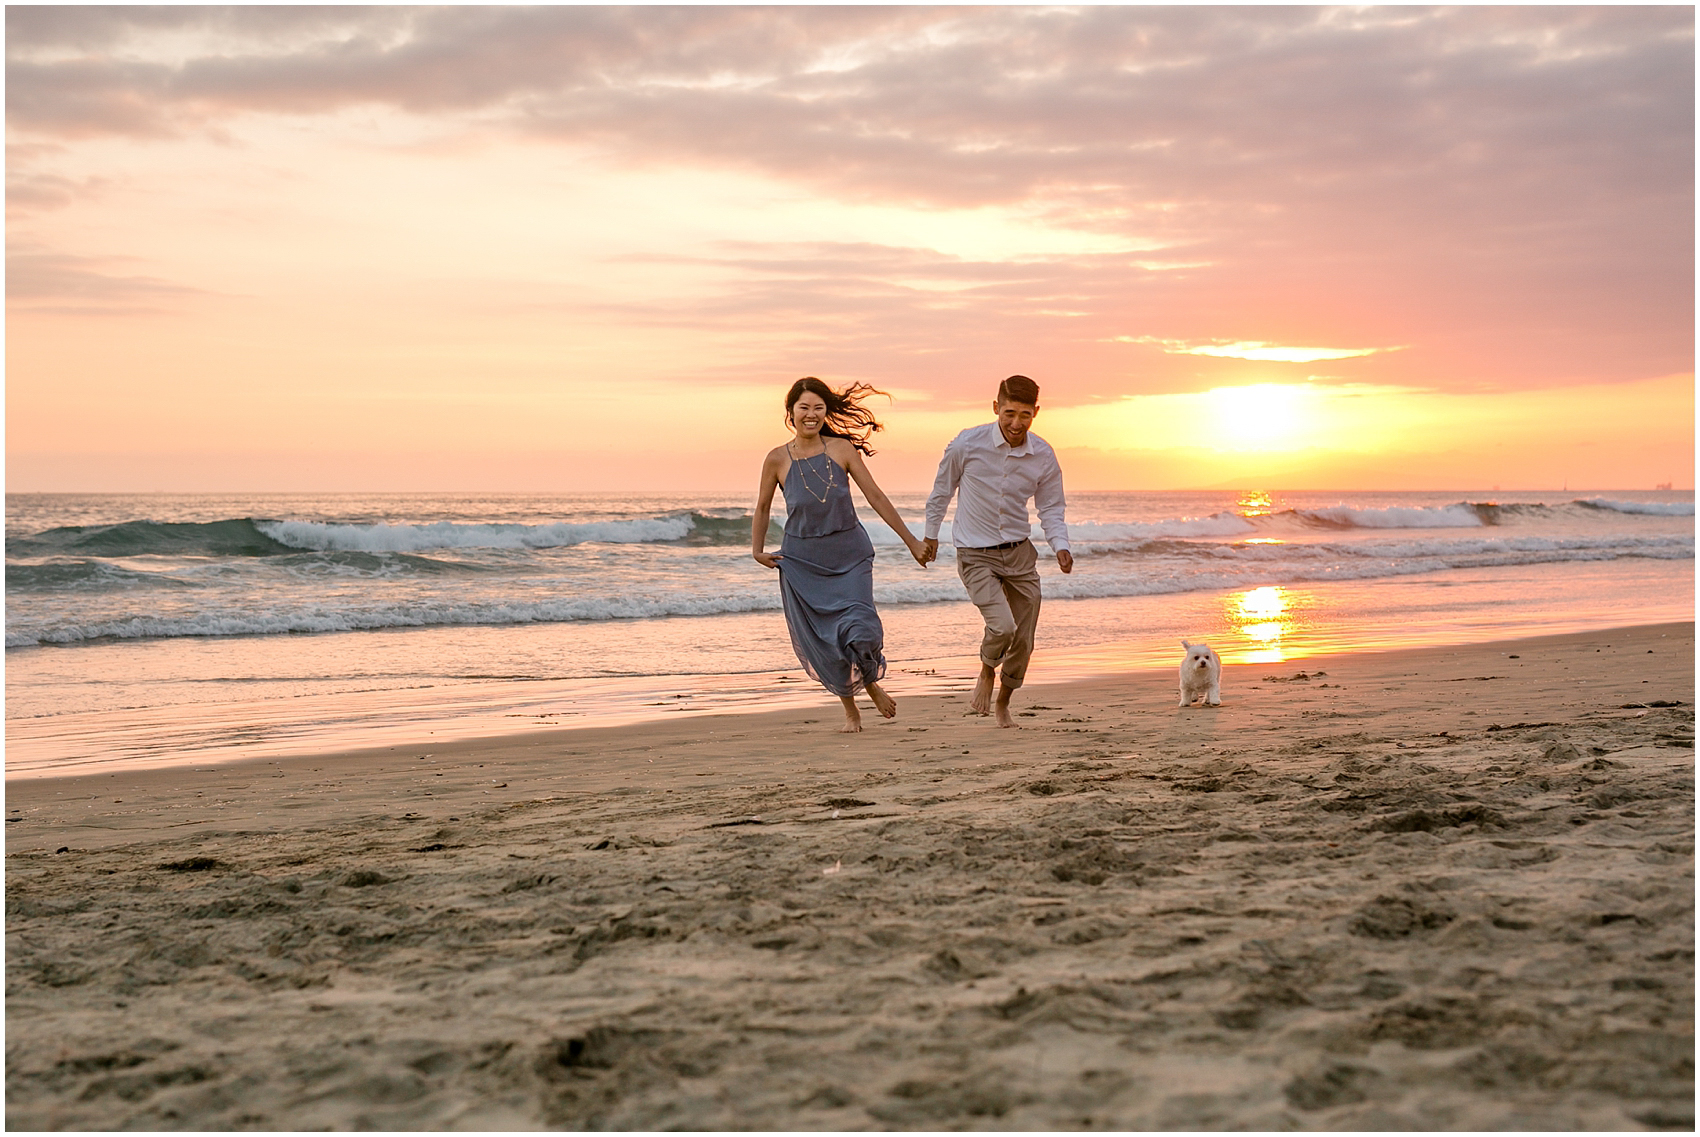 Newport Beach Engagement Photography Smetona Photo Bonnie Tim-0025.jpg